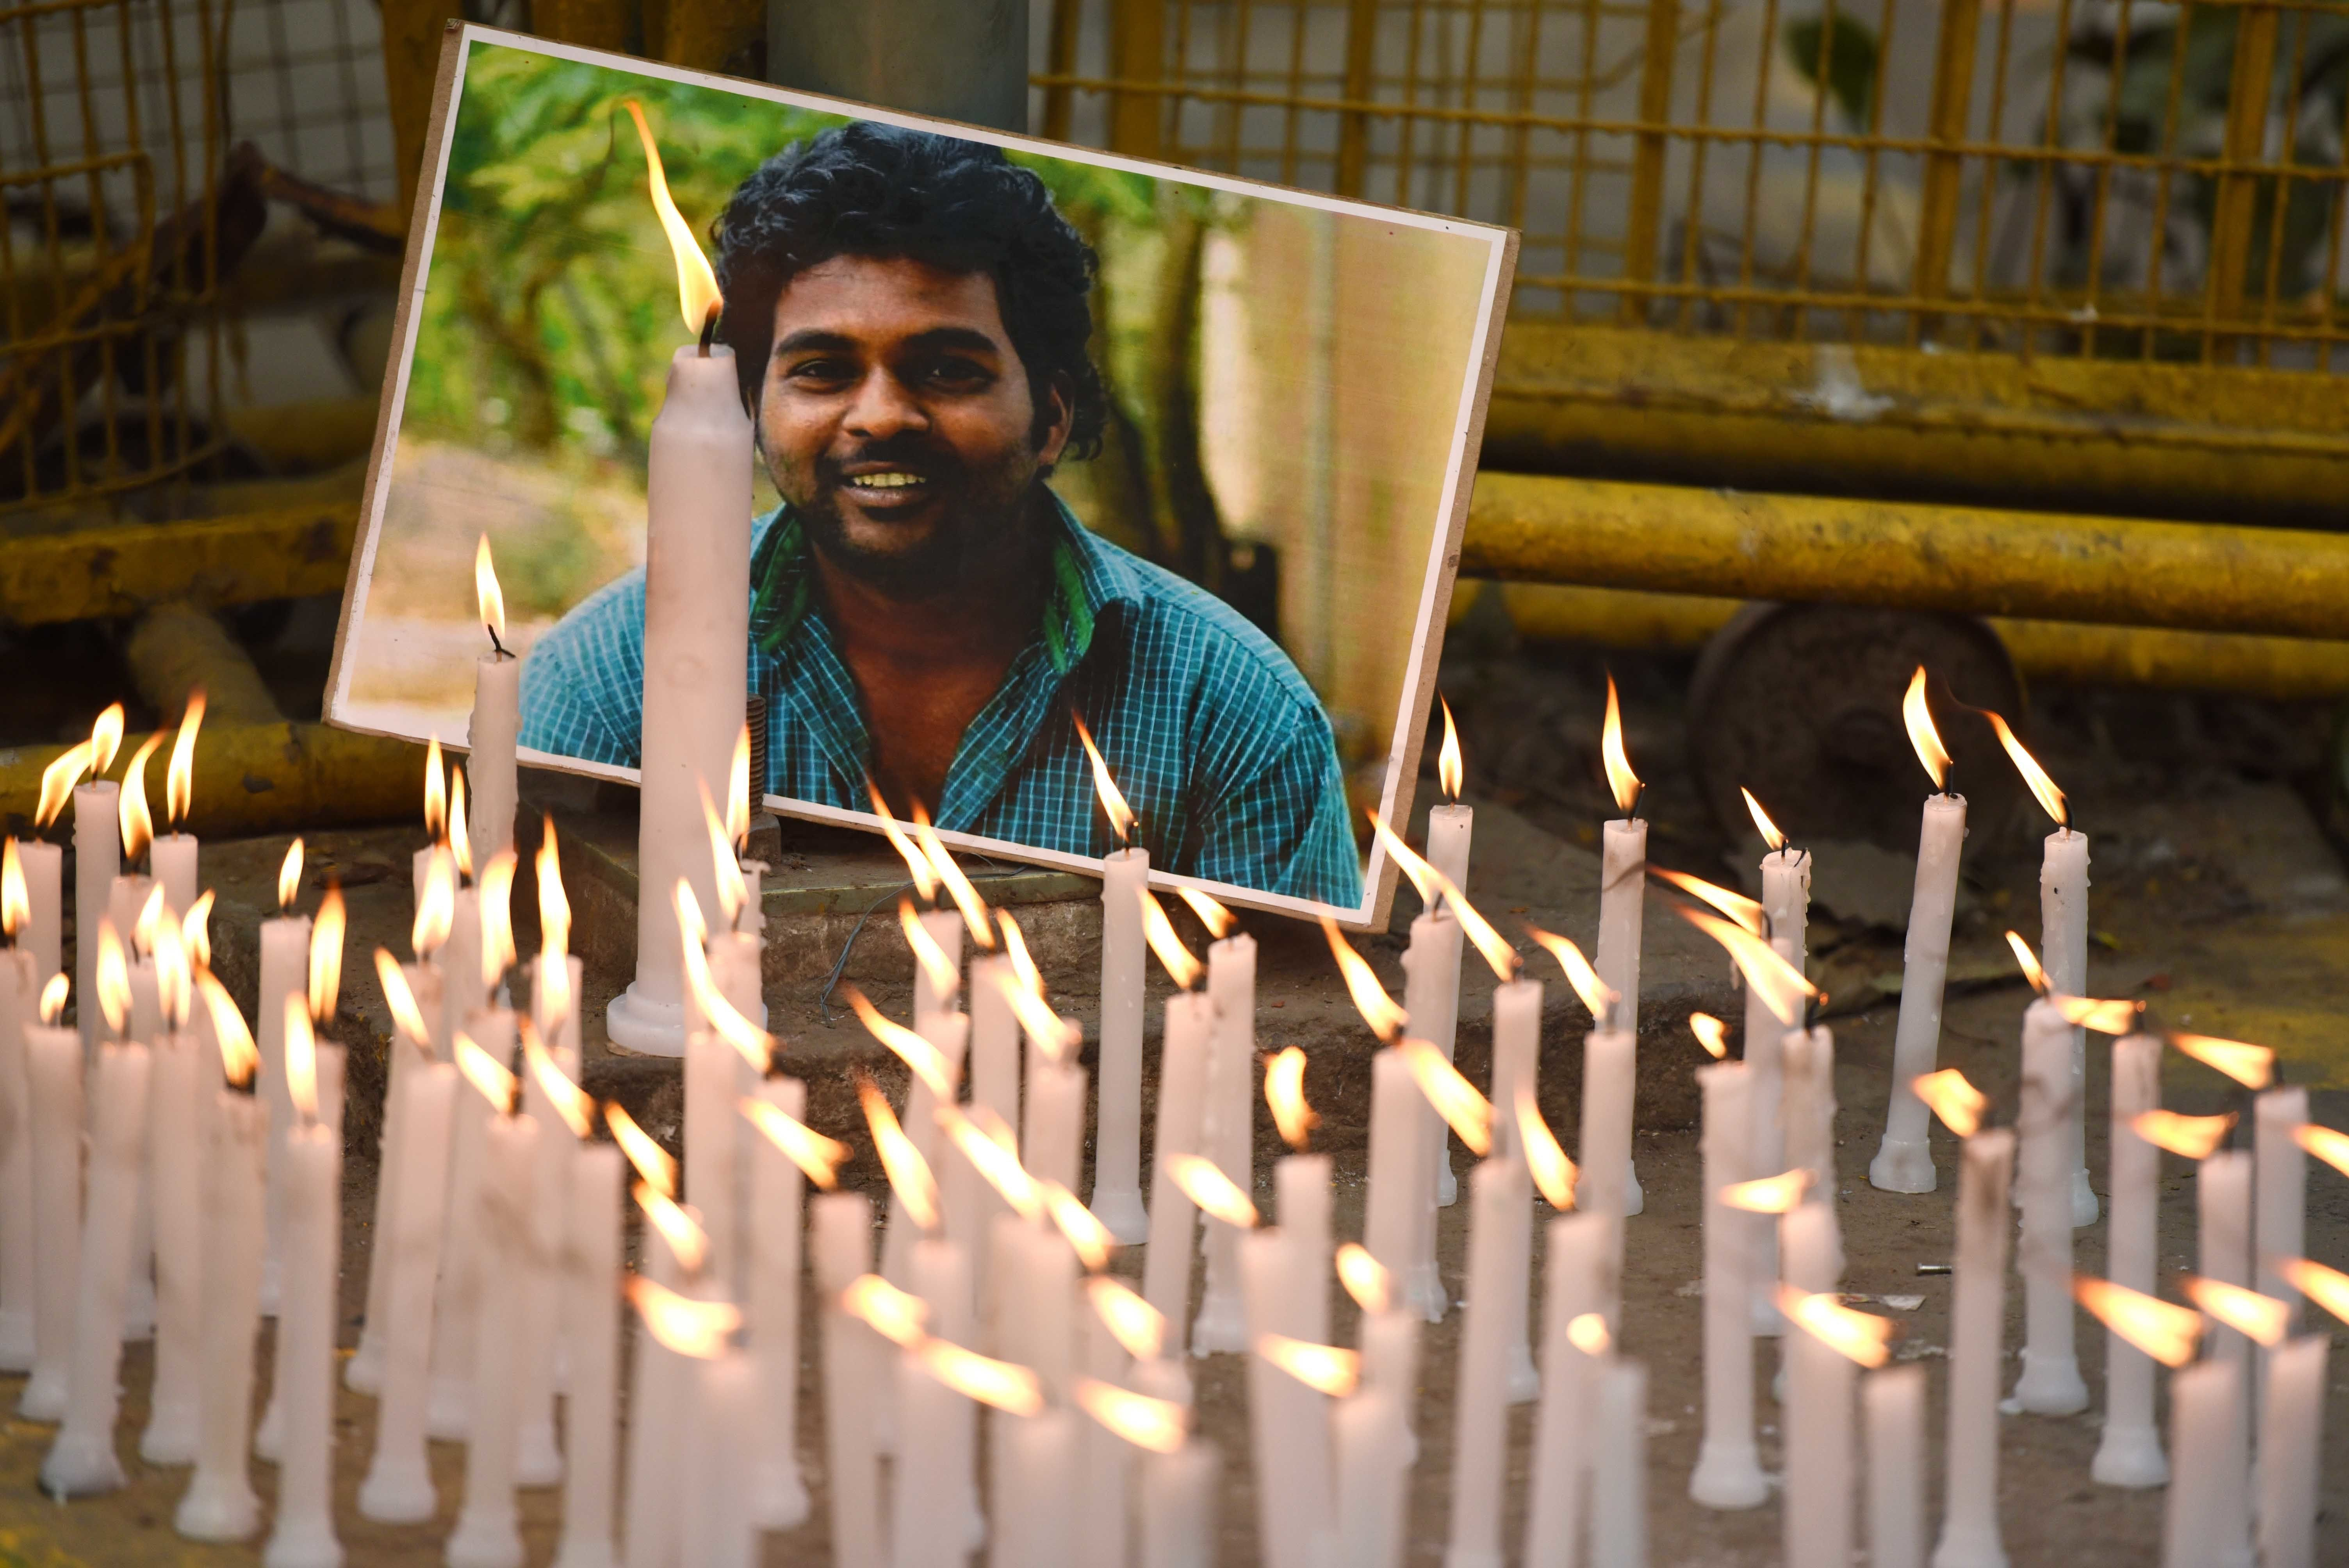 On Rohith Vemula's Death Anniversary, Students, Supporters To Pay